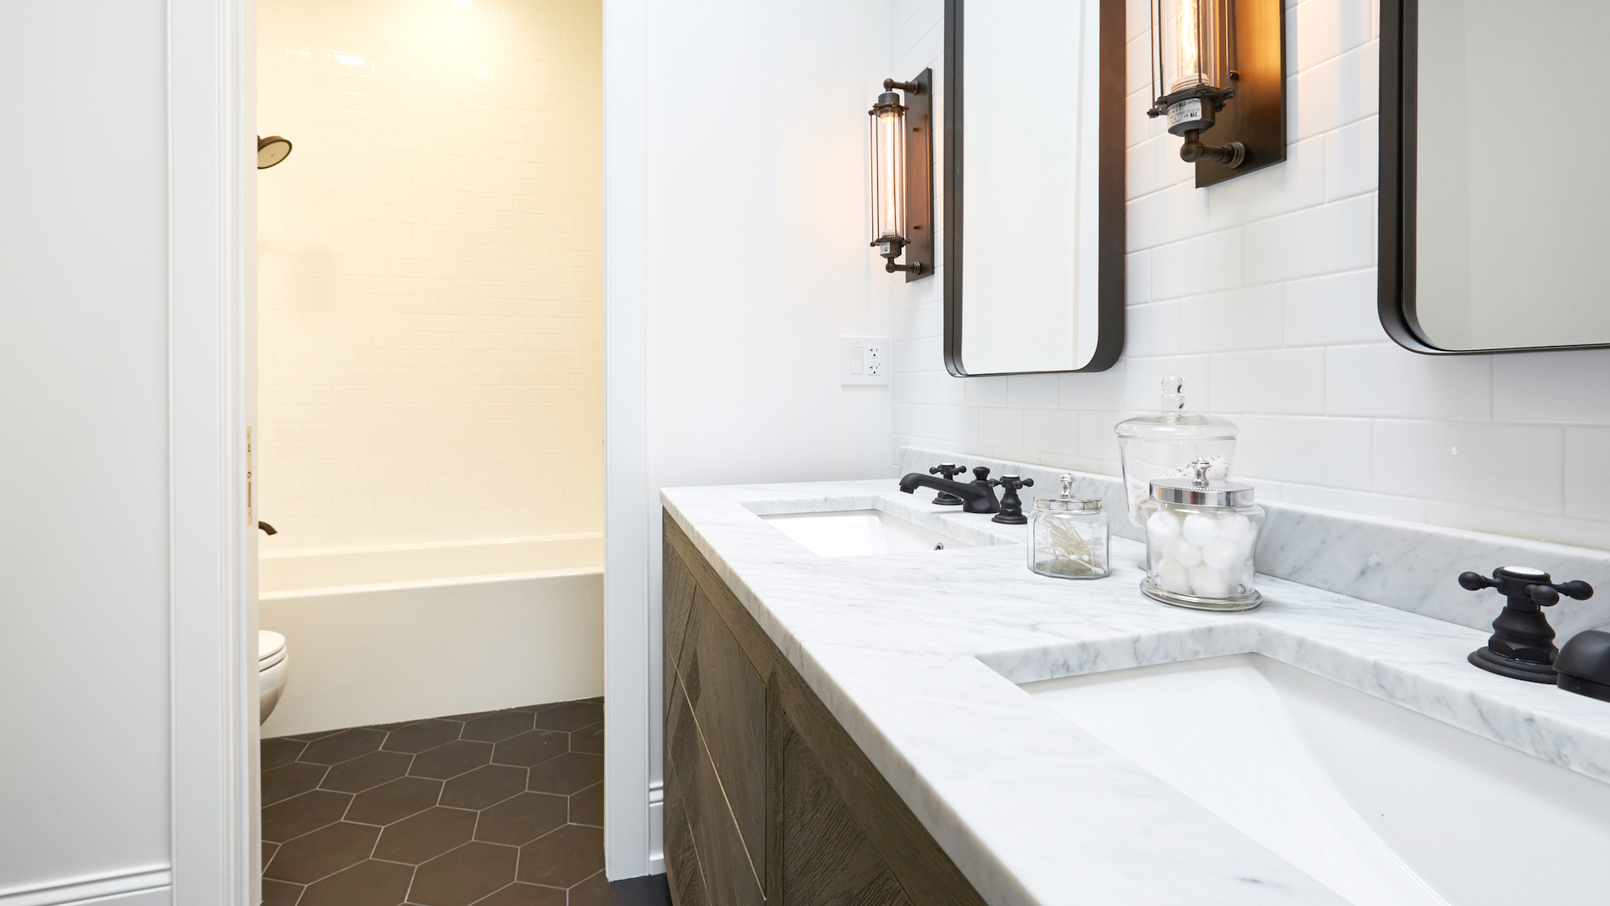 bathrooms Archives - Preview Chicago | Chicago Real Estate Entertainment